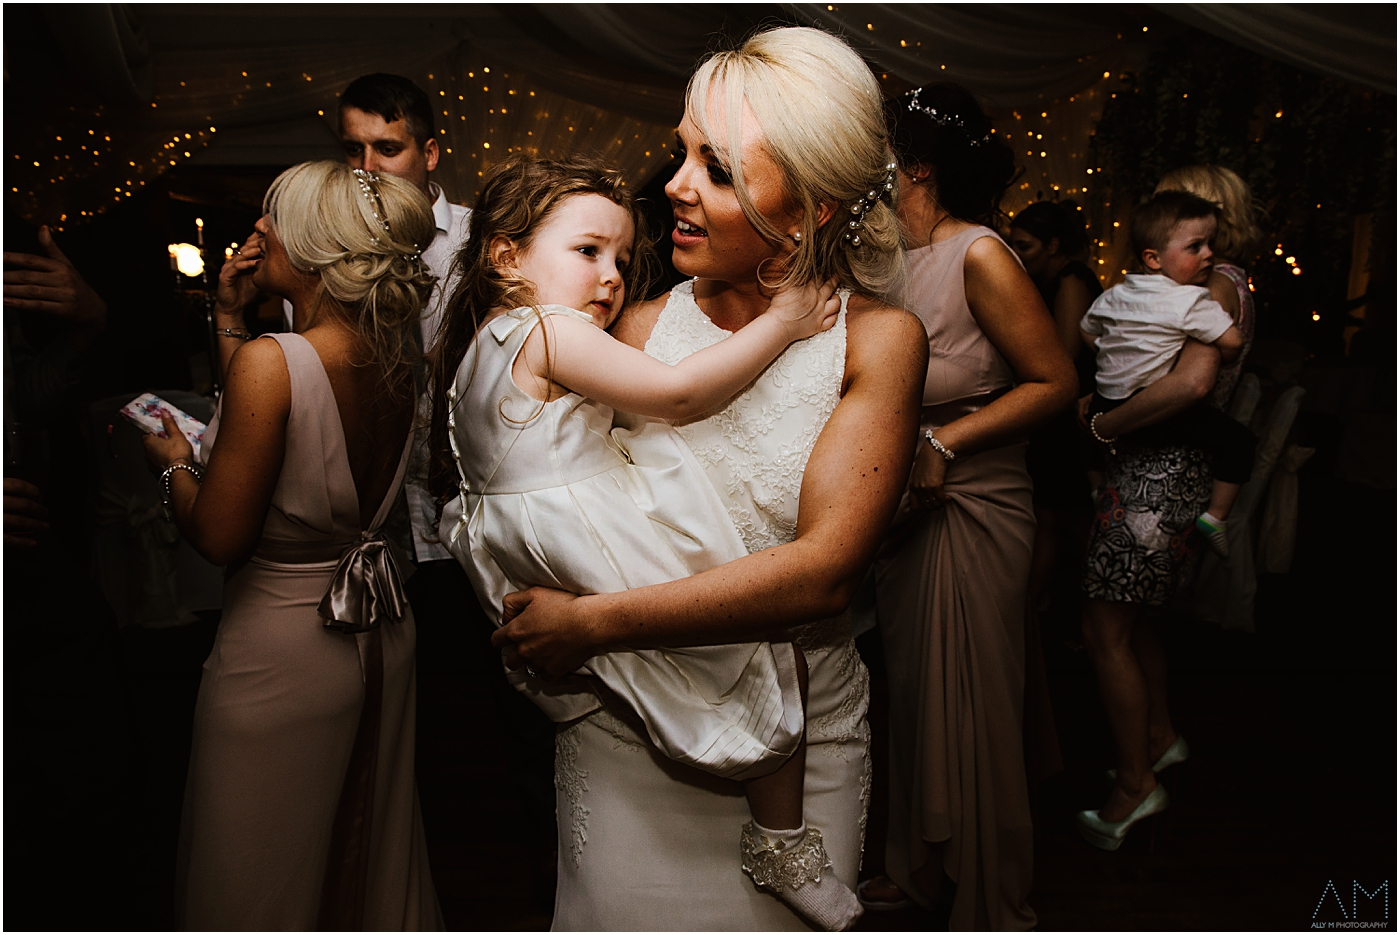 Bride with her girl